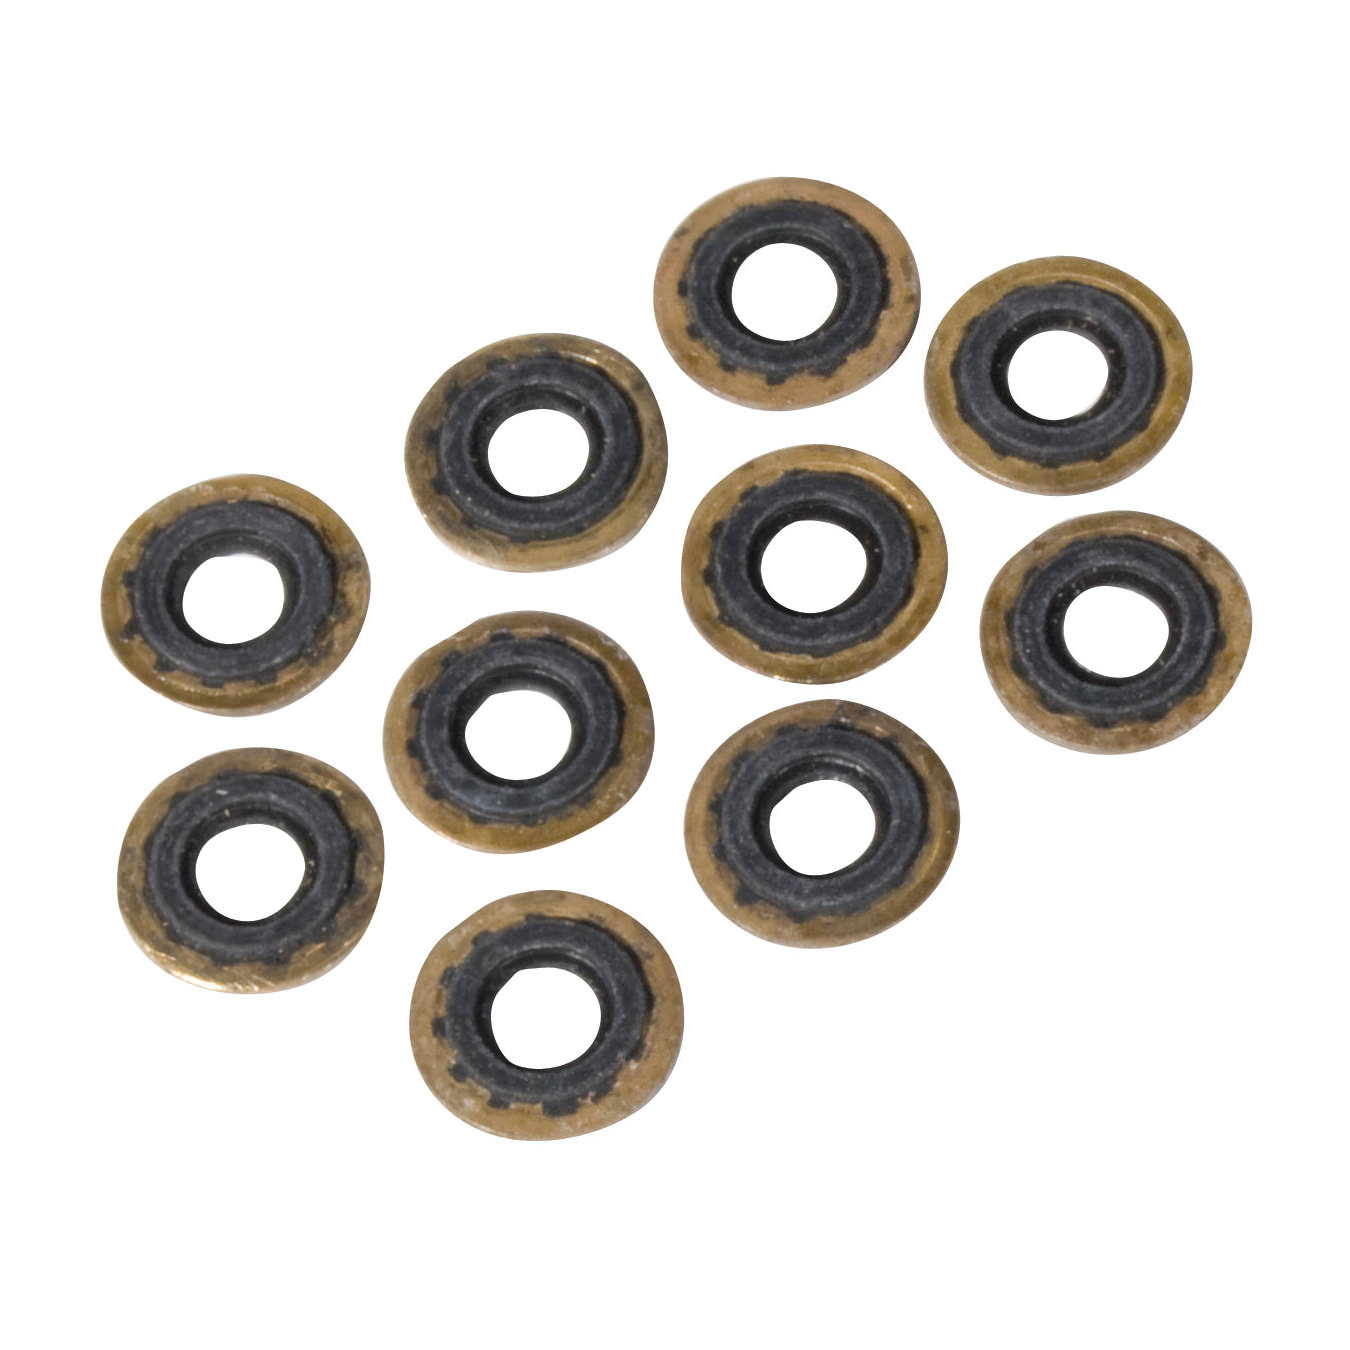 Replacement O-Rings for Oxygen Regulators (Bag of 10)